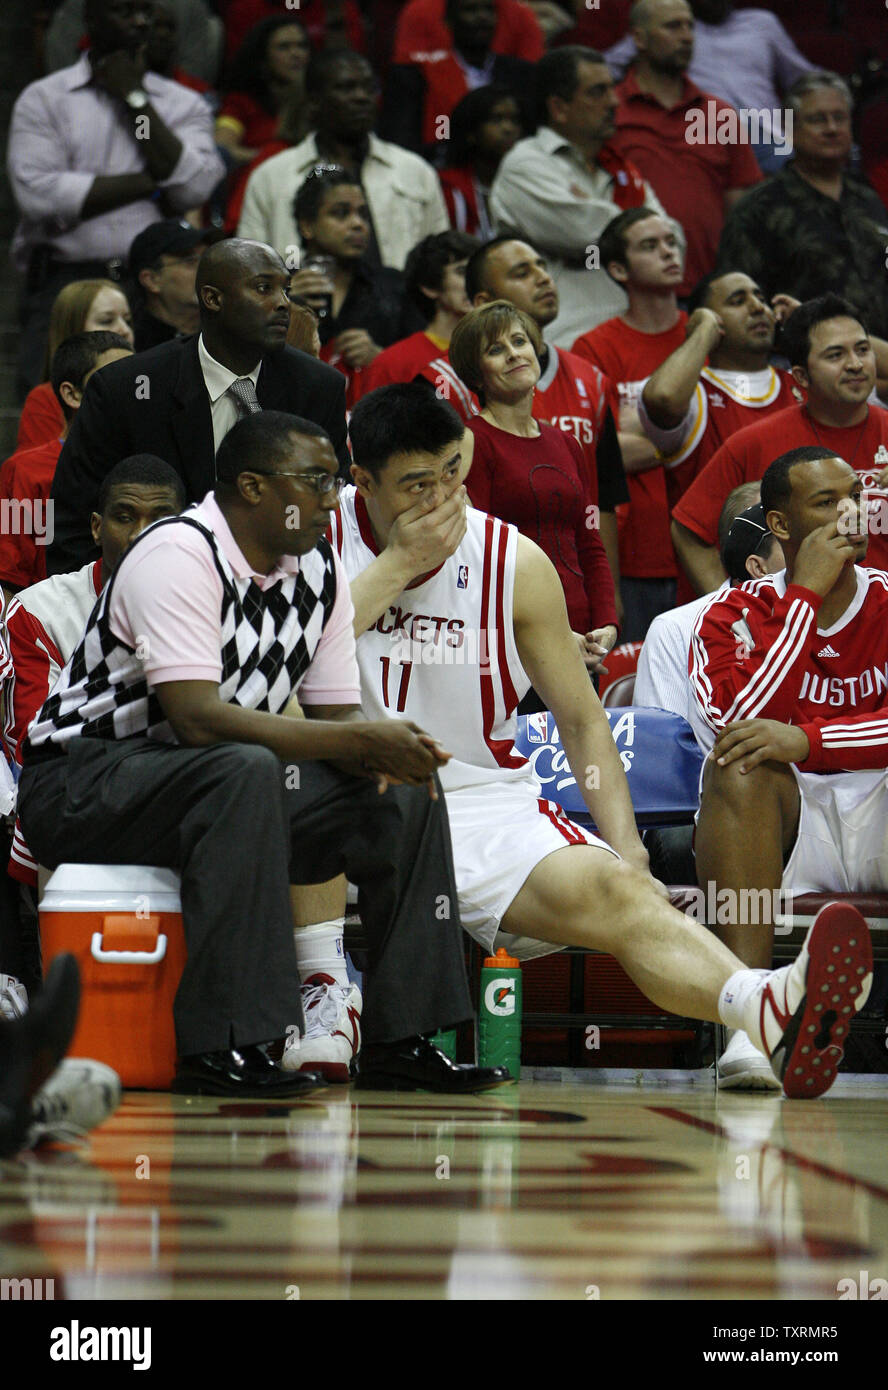 Houston Rockets center Yao Ming (C), of China, shows his frustration as he watches his team take on the Los Angeles Lakers from the bench in the second half of Game 3 of the Western Conference semifinals at Toyota Center in Houston, Texas on May 8, 2009. Yao was sidelined after experiencing soreness in his right ankle. The Lakers defeated the Rockets 108-94 to take a 2-1 lead in their best-of-seven series. (UPI Photo/Aaron M. Sprecher) - Stock Image